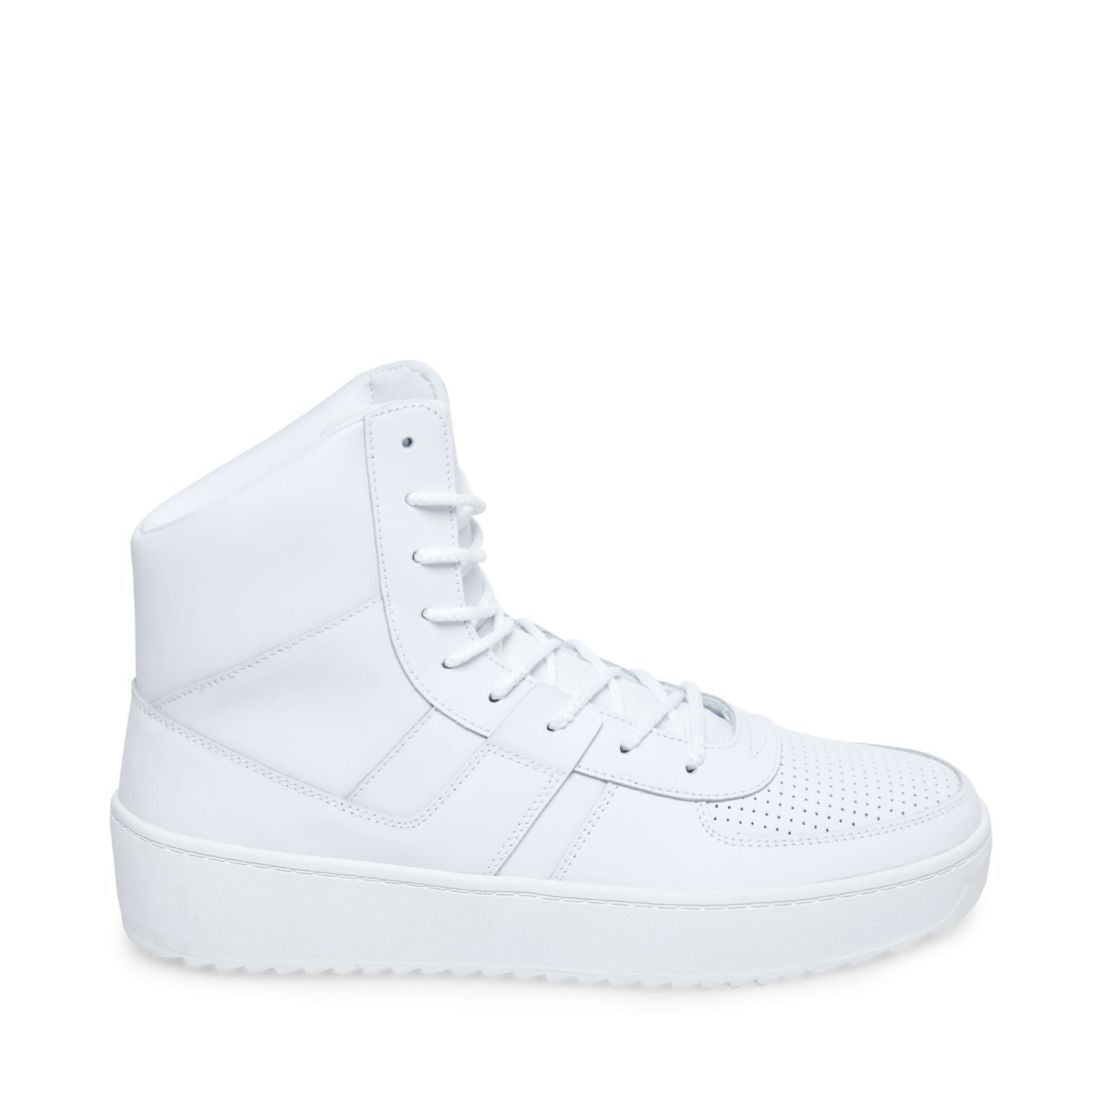 CRAZED WHITE - Steve Madden